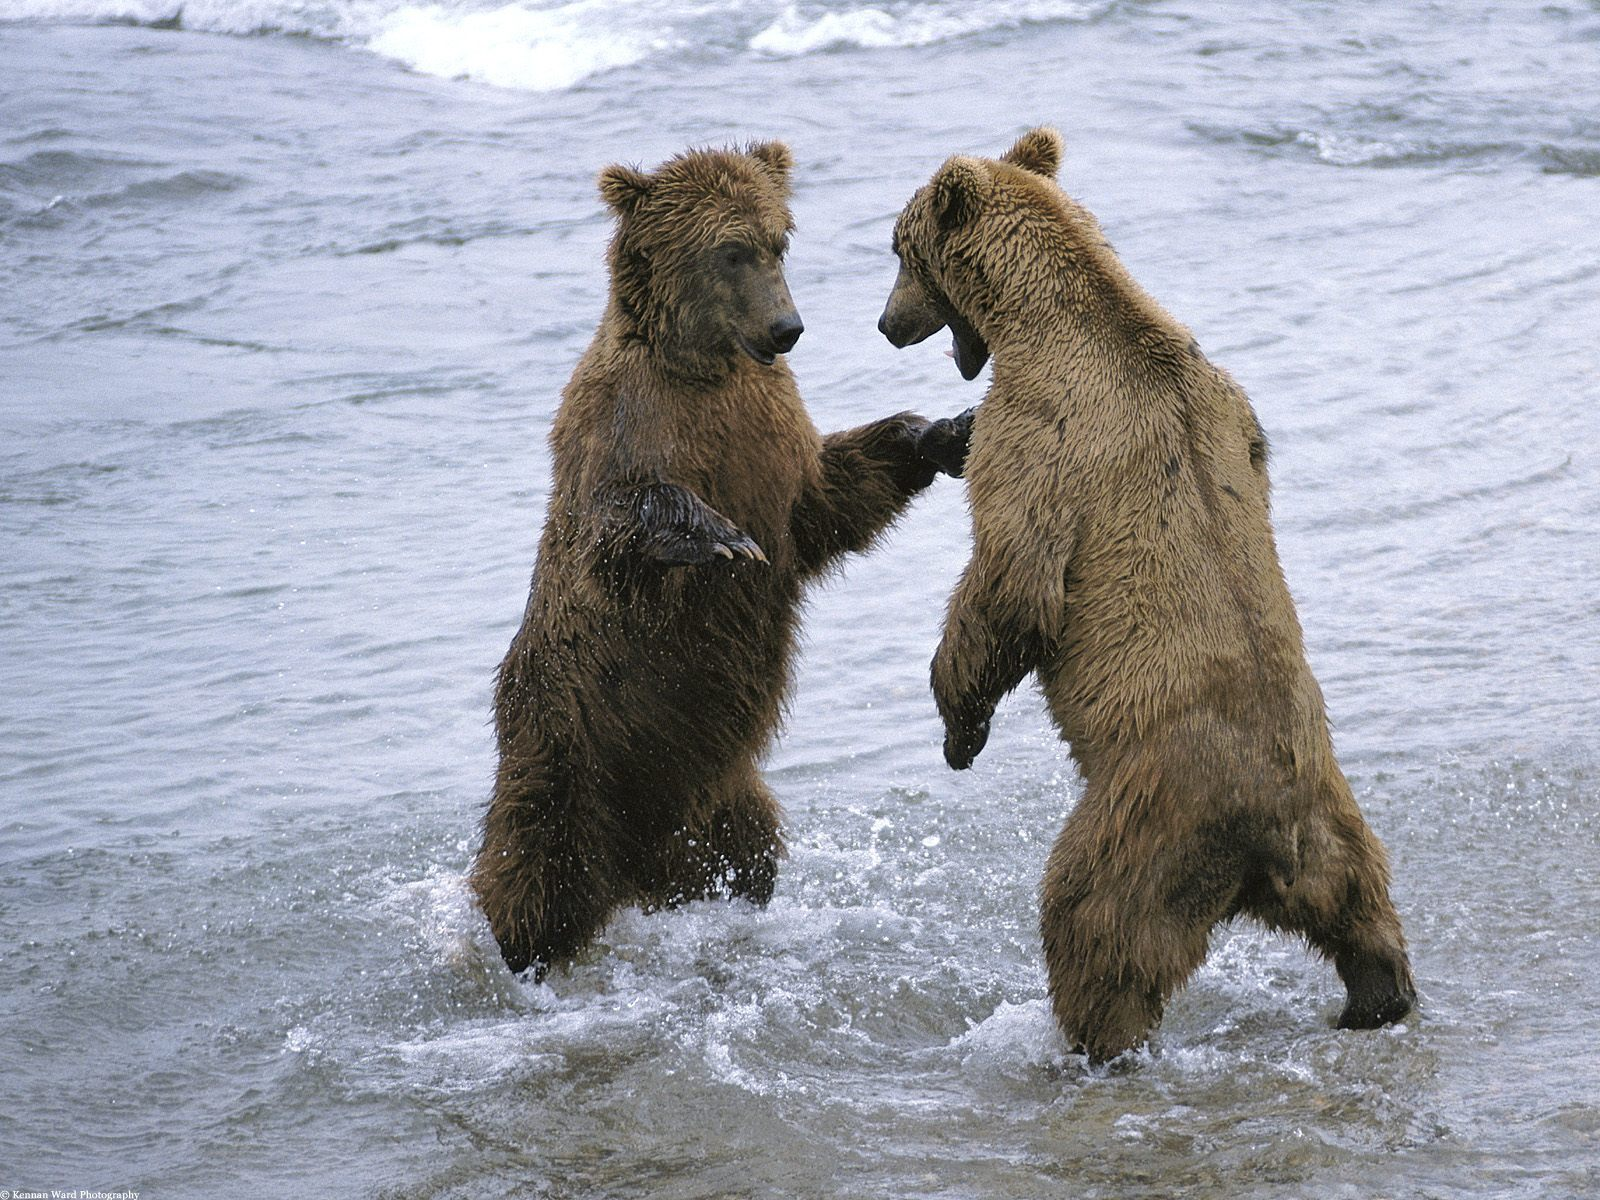 http://2.bp.blogspot.com/-pmtvdtpS0Pc/Tcv8lr3uxOI/AAAAAAAAMyg/HPZJL5iqums/s1600/bear-boxing-1600-x-1200-animal-wallpaper-desktop.jpg